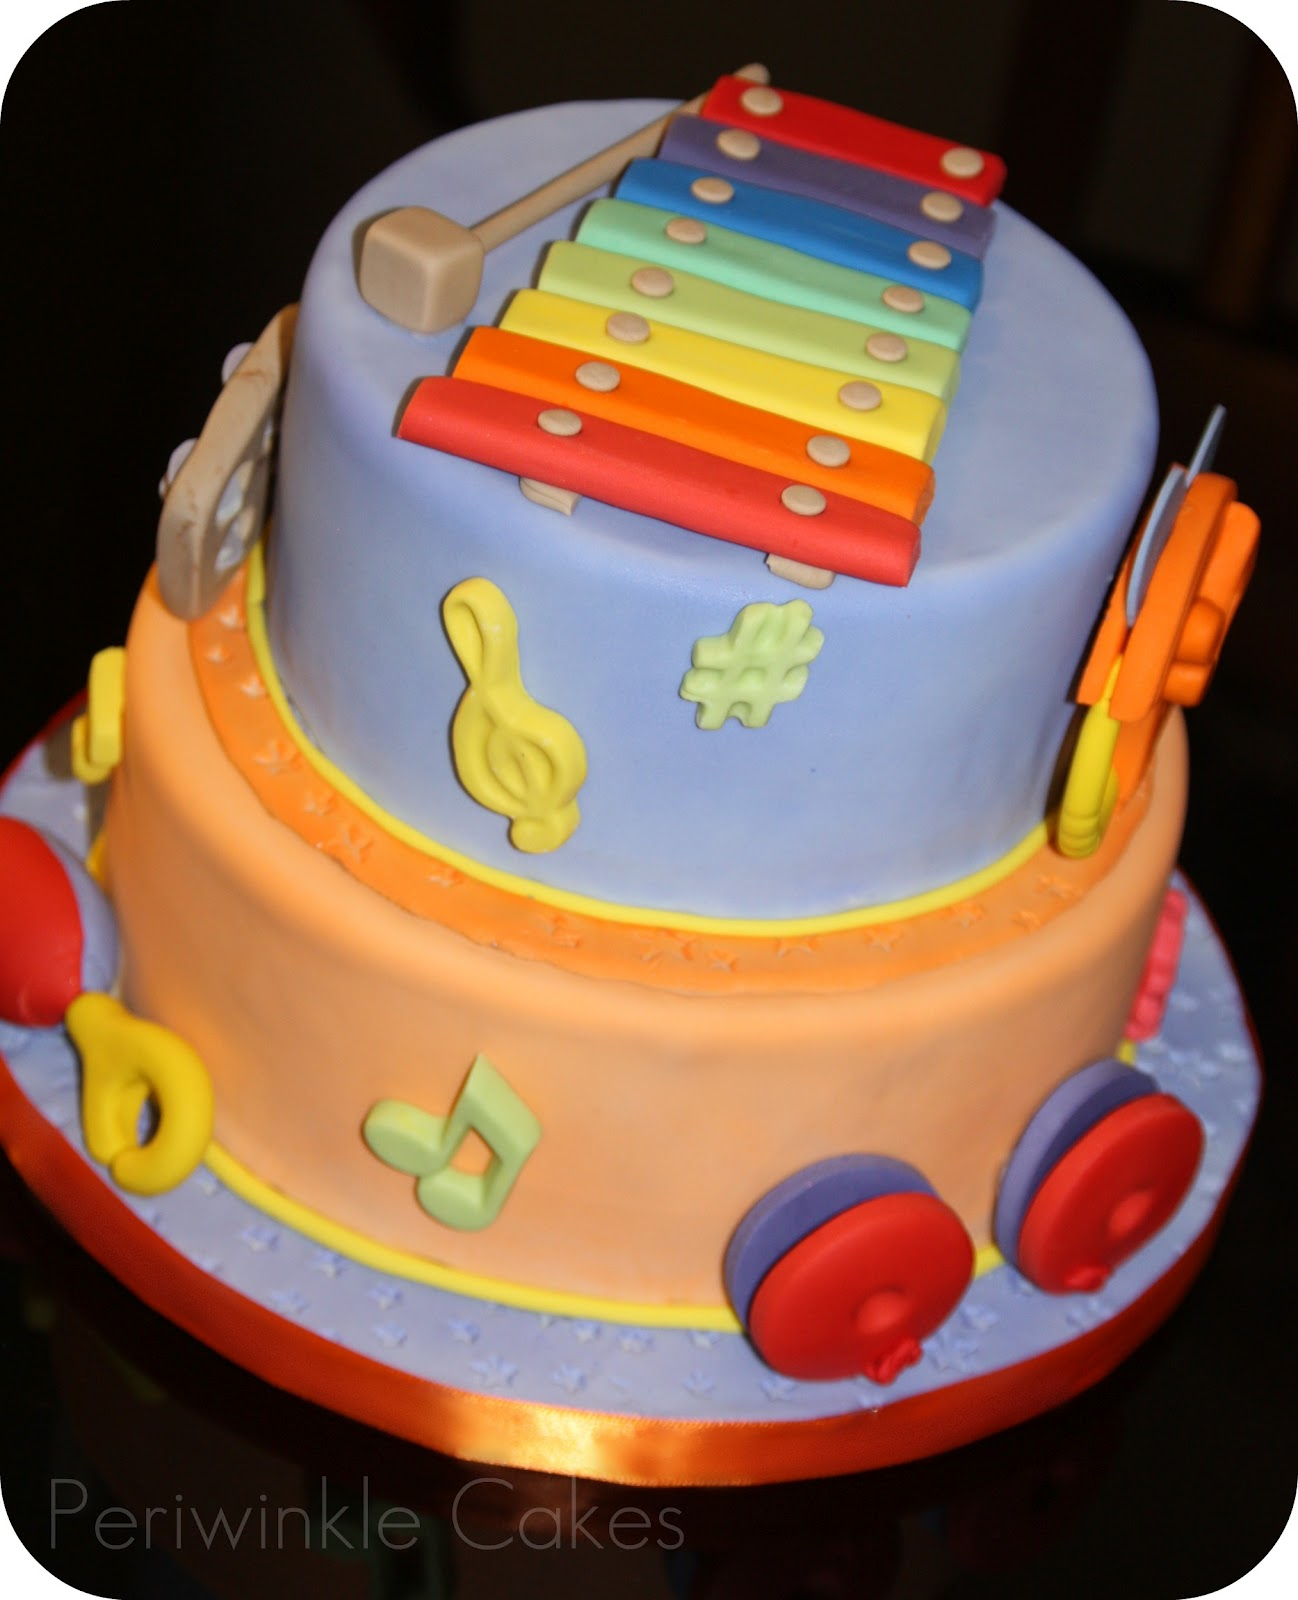 Periwinkle Cakes: The Taste Of Music